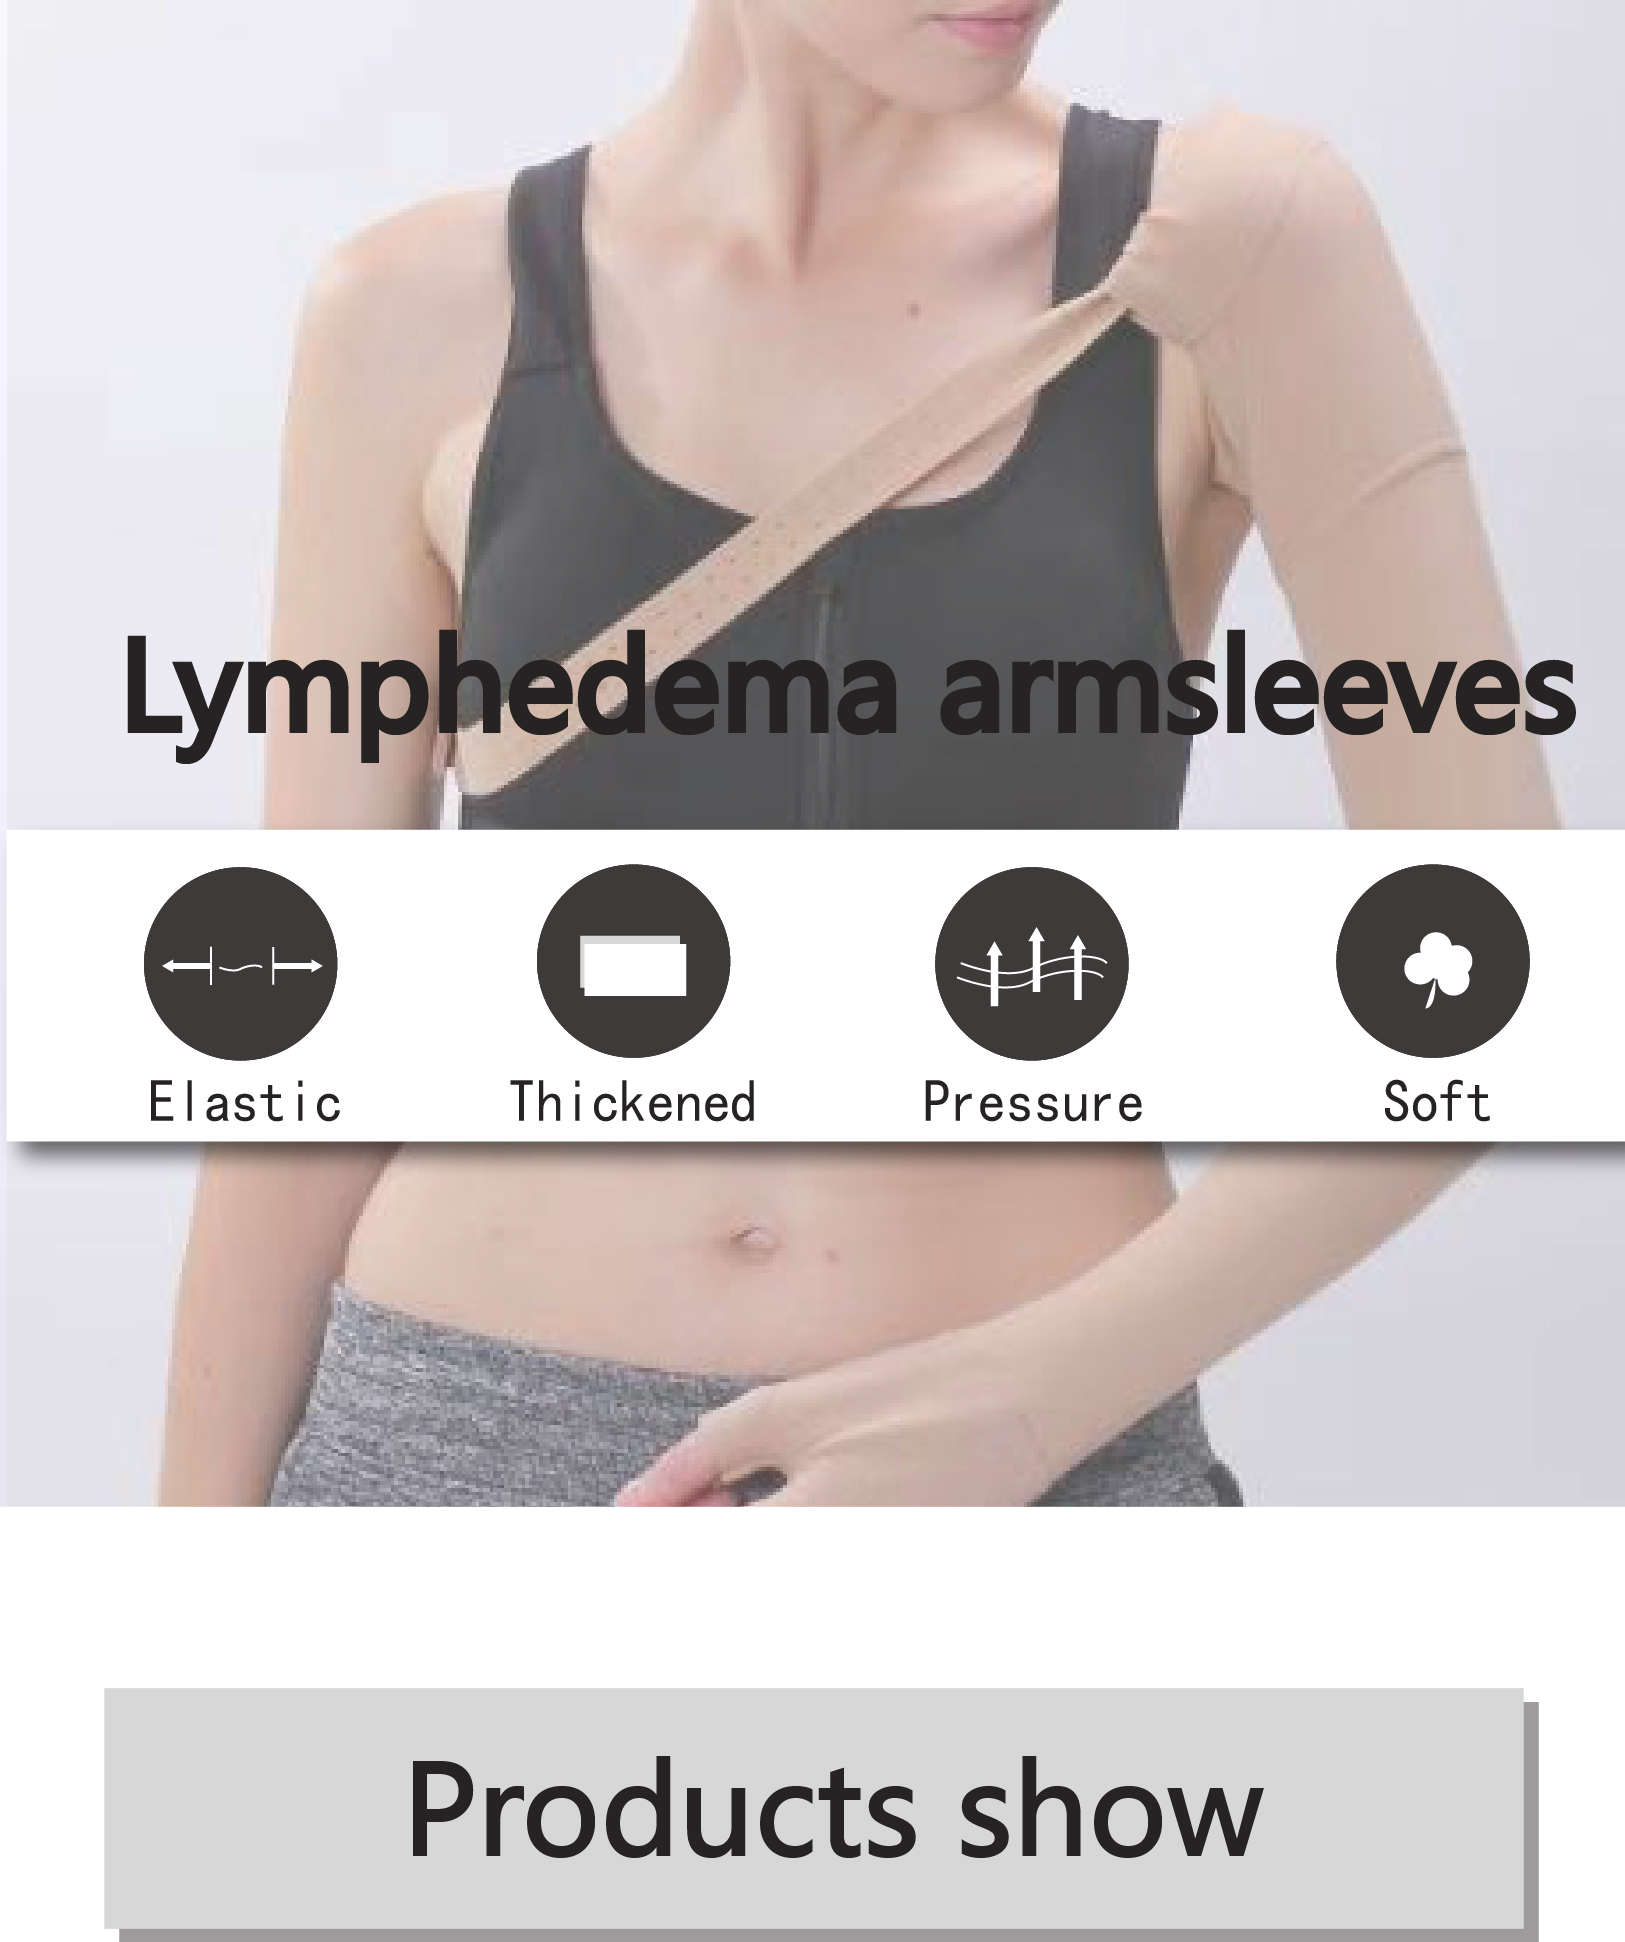 post mastectomy compression arm sleeve lymphedema support with glove